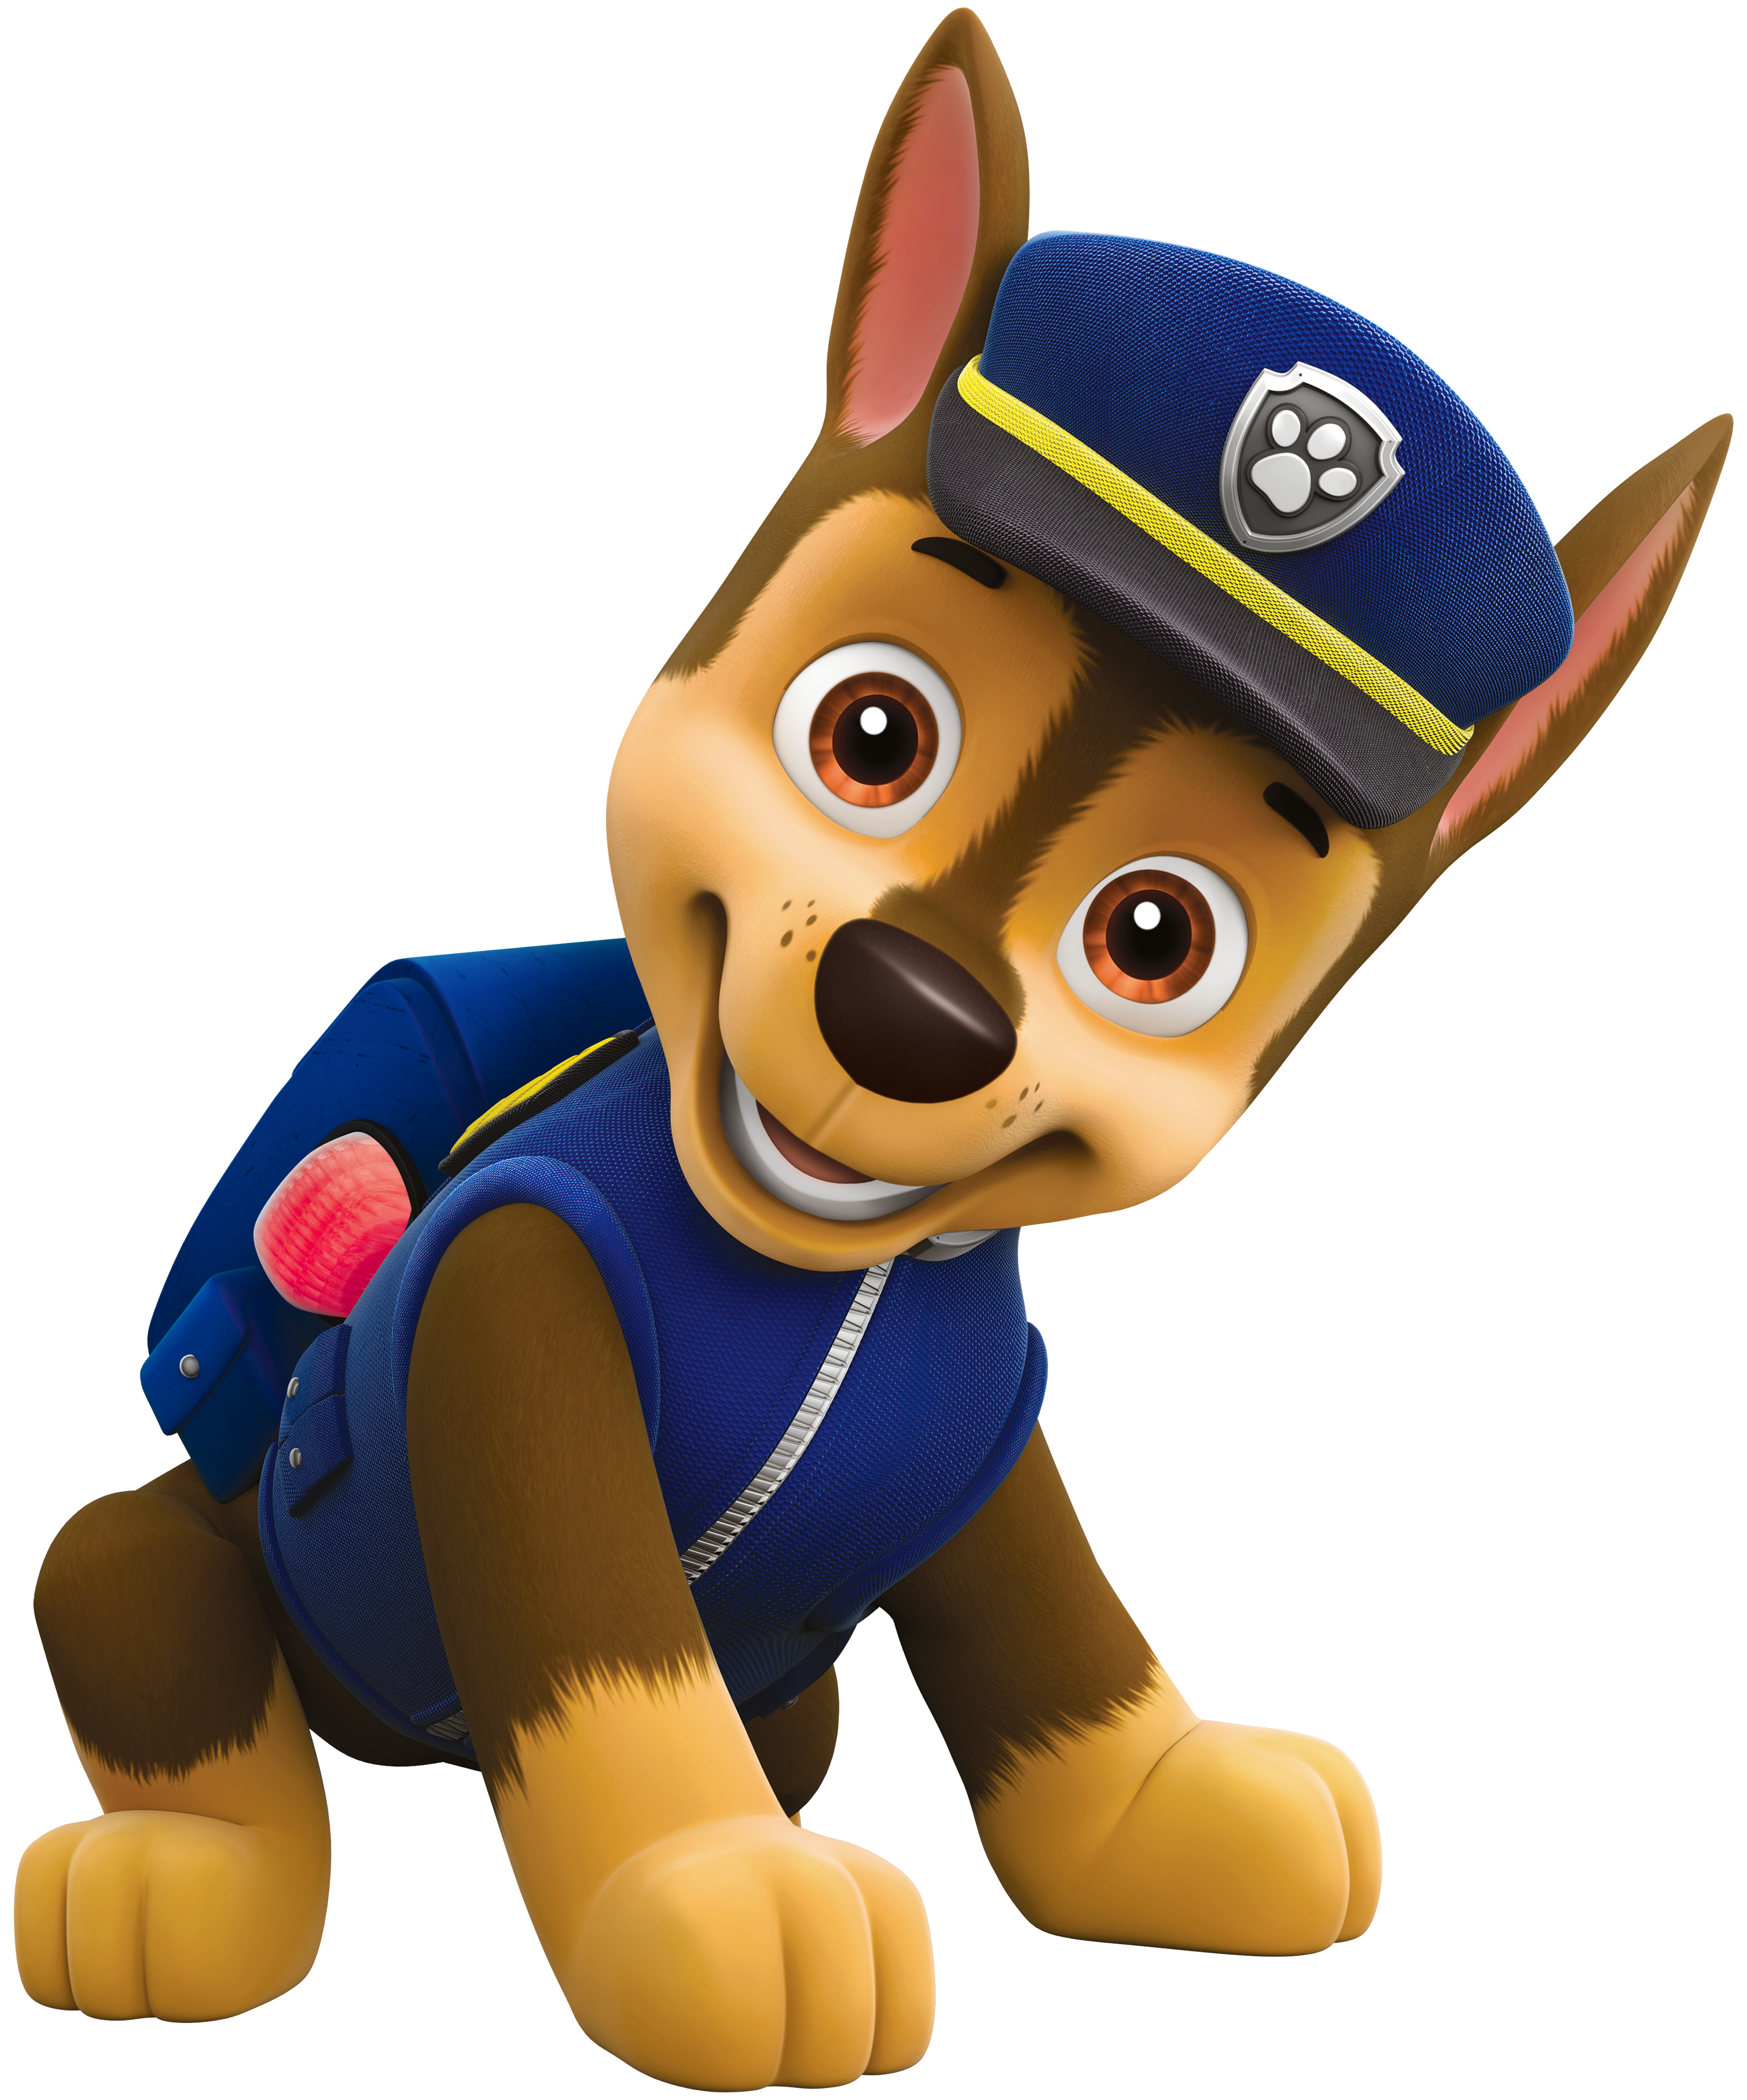 Paw Patrol Chase Png Cartoon Image Gallery Yopriceville High Quality Images And Transparent Png Paw Patrol Cartoon Chase Paw Patrol Paw Patrol Decorations